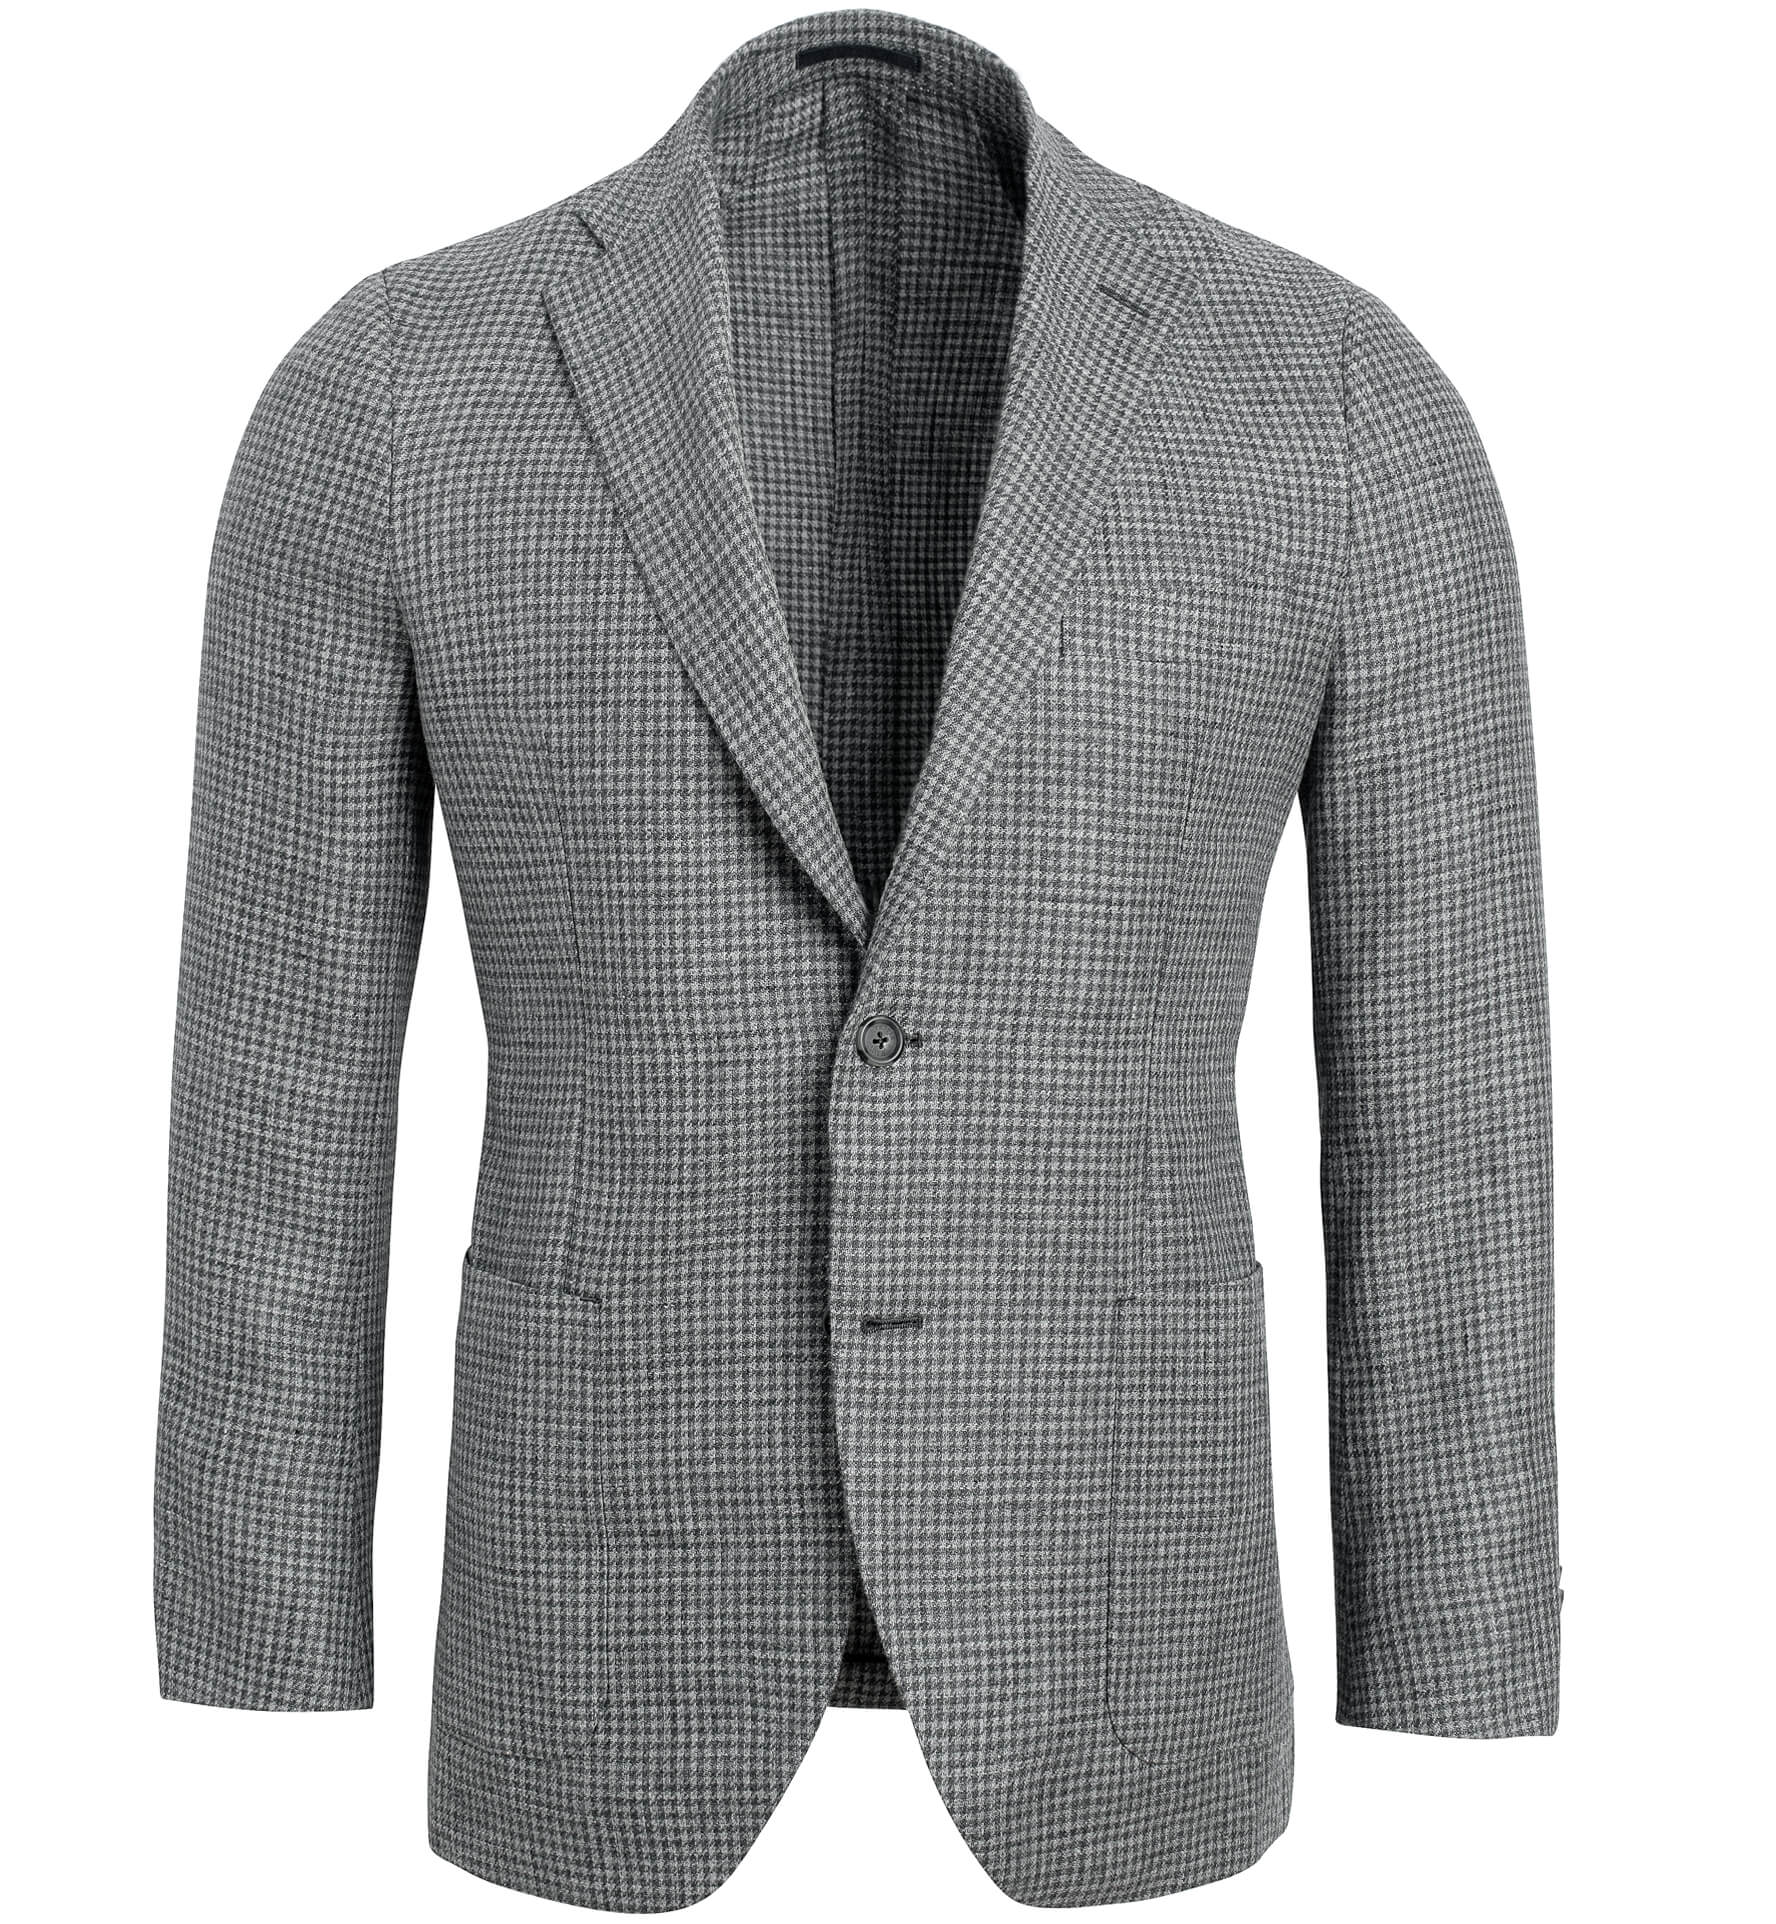 Zoom Image of Bedford Grey Houndstooth Linen and Wool Jacket